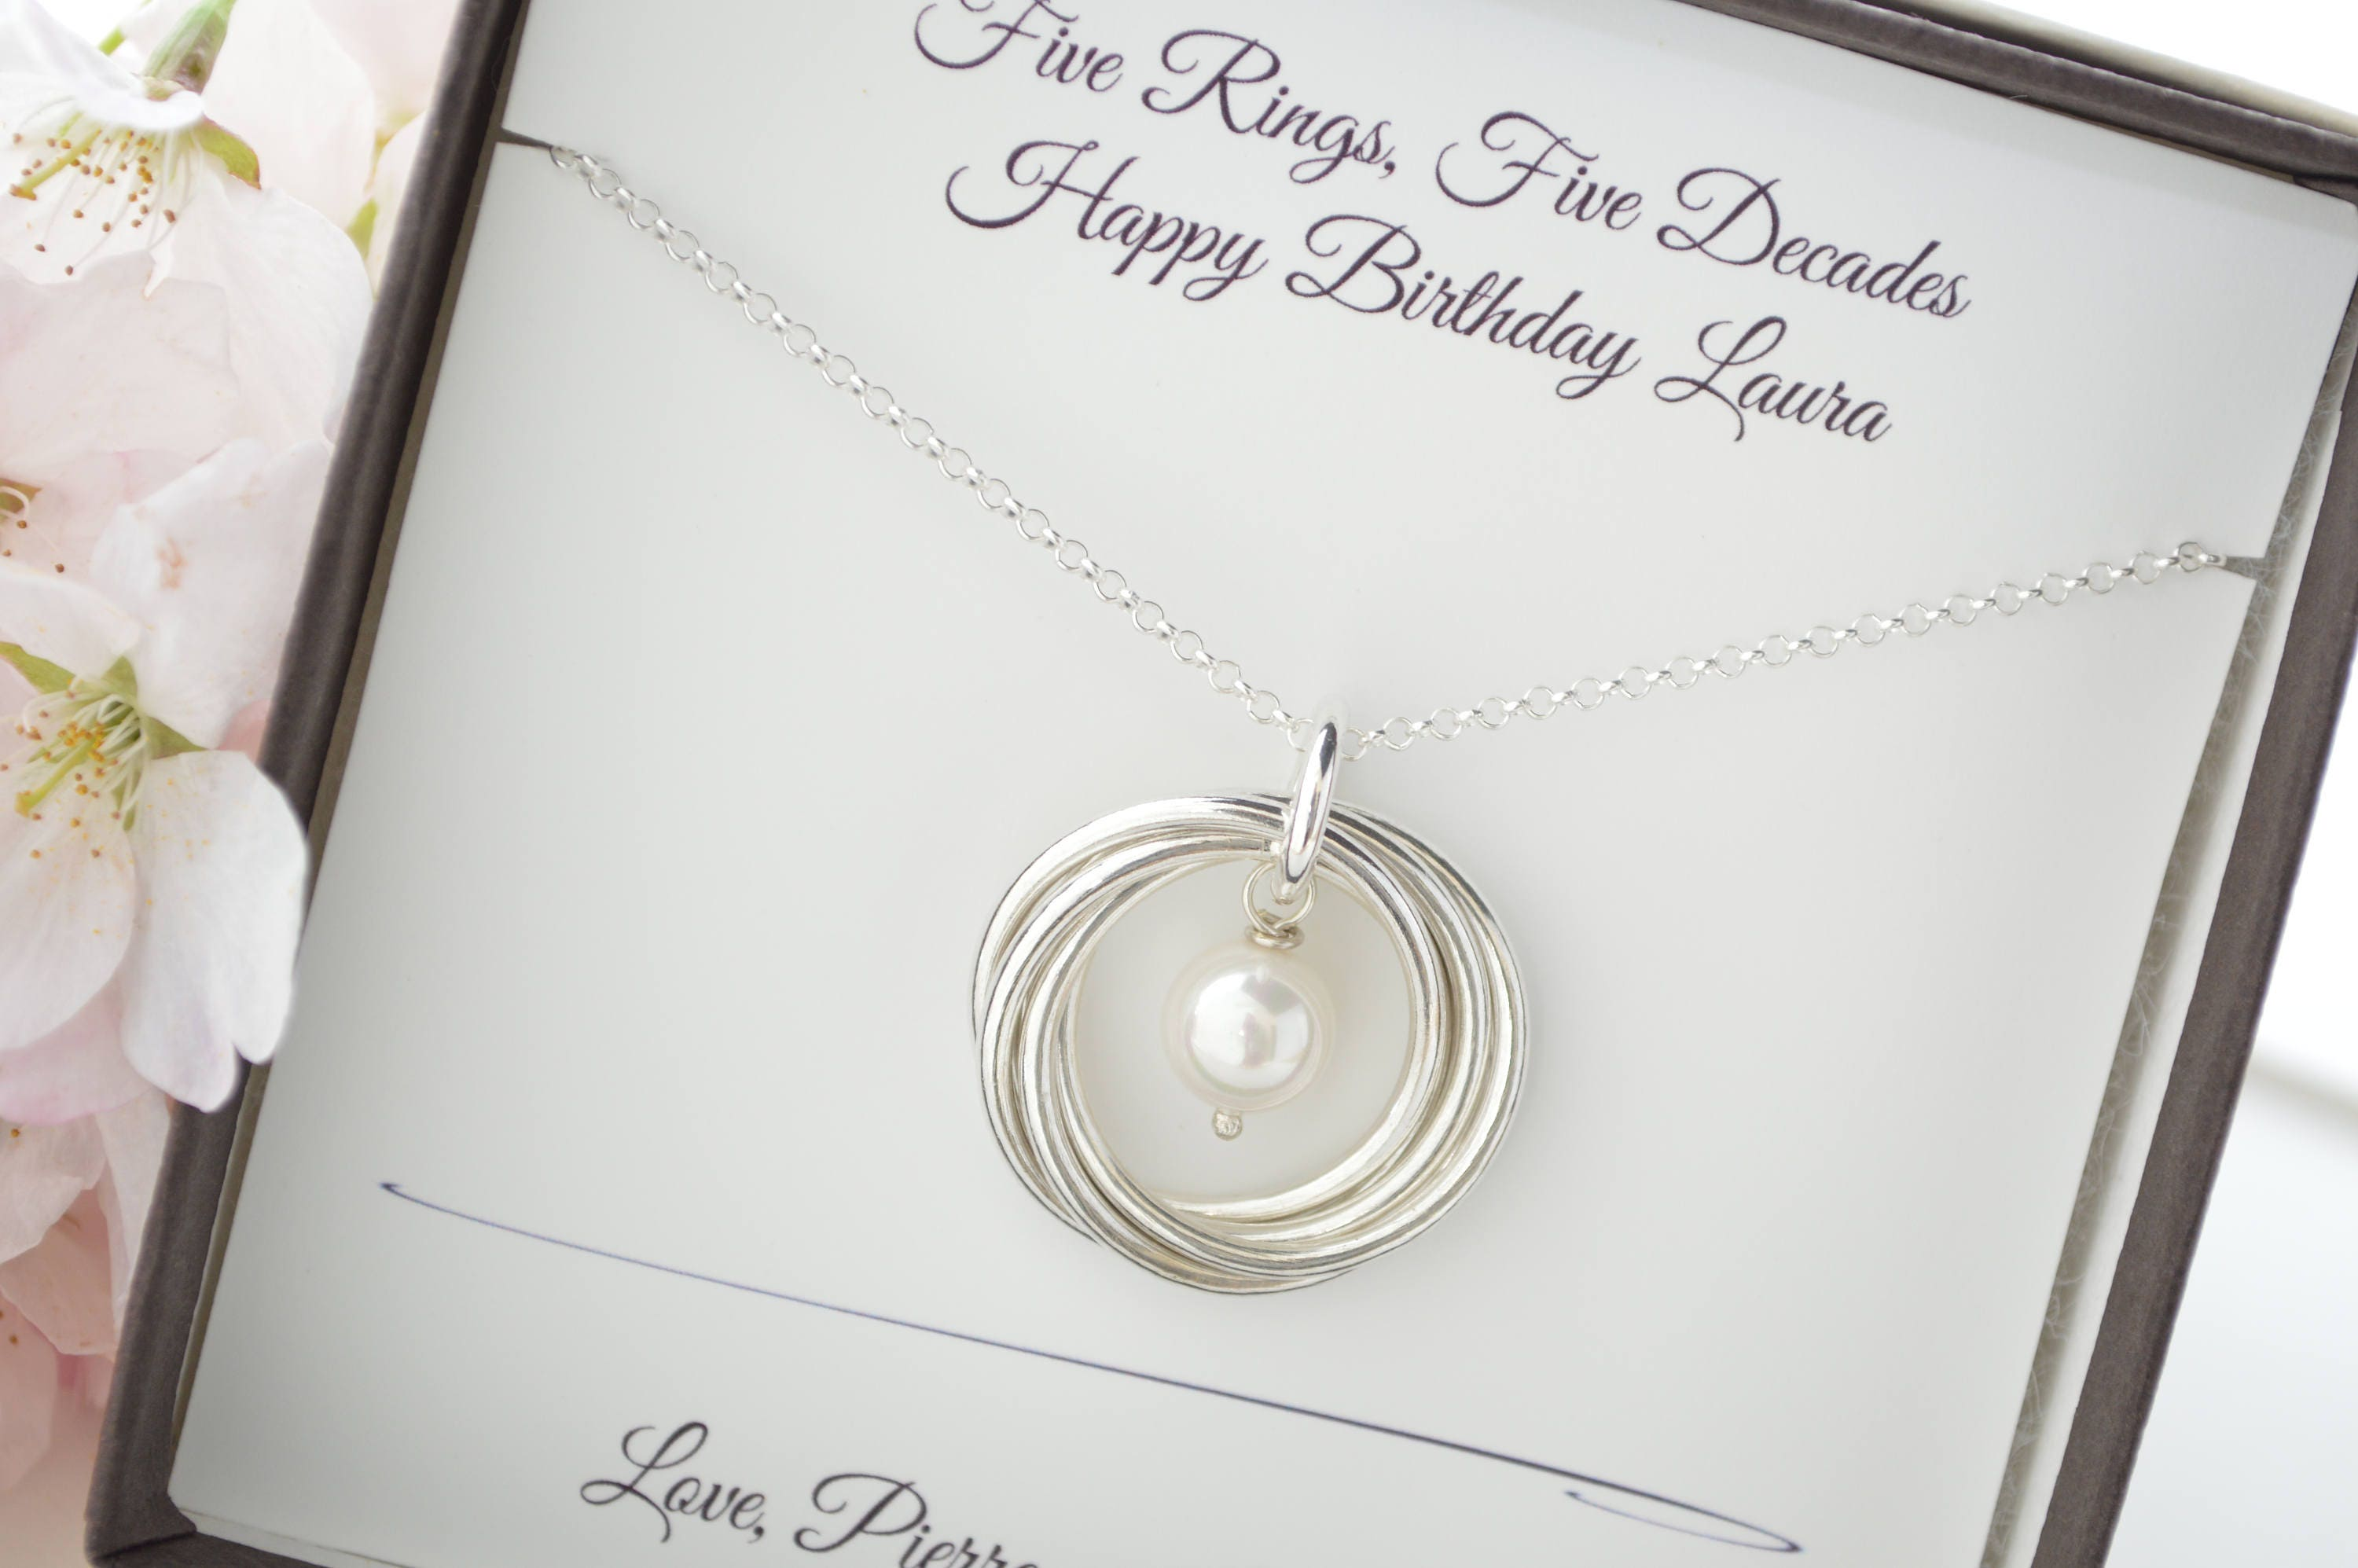 50th Birthday Gift For Mom Necklace 5 Best Friends 5th Anniversary Wife Pearl Birthstone June